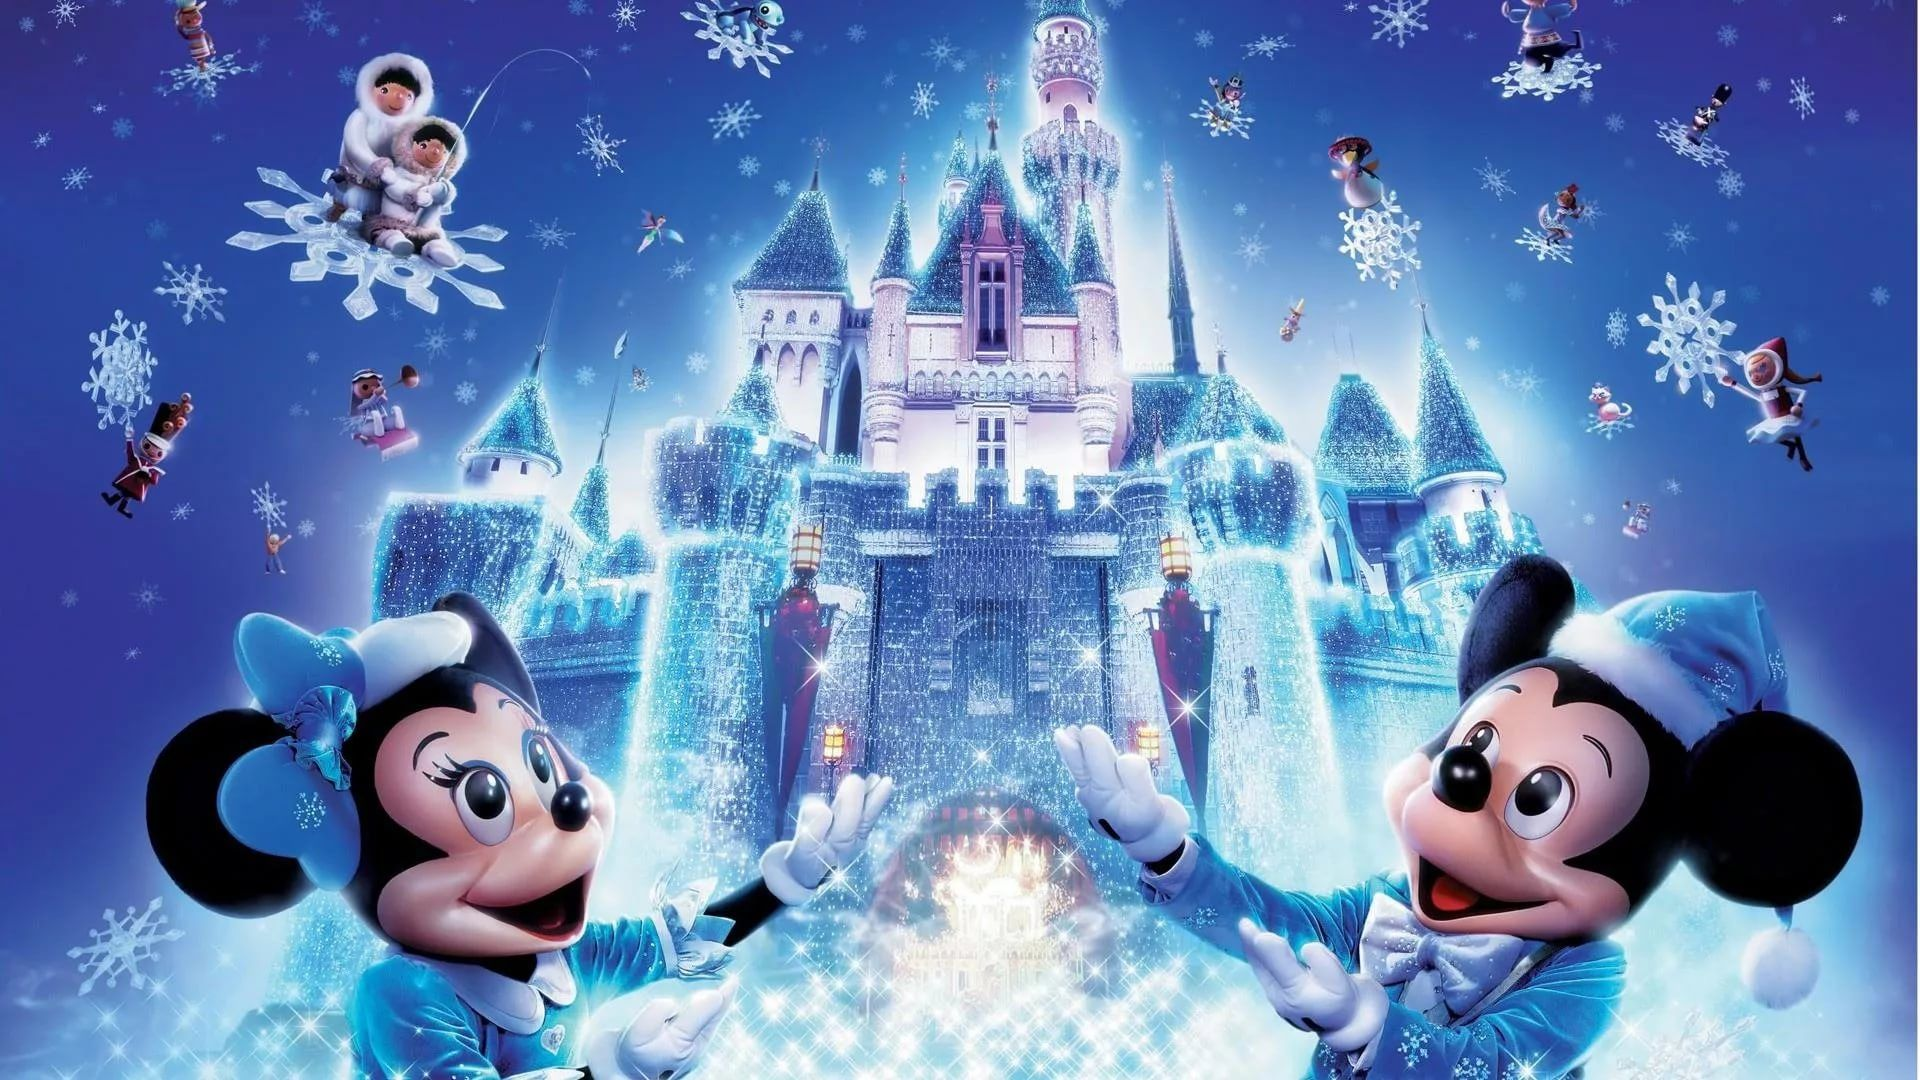 Disney Christmas wallpaper picture hd